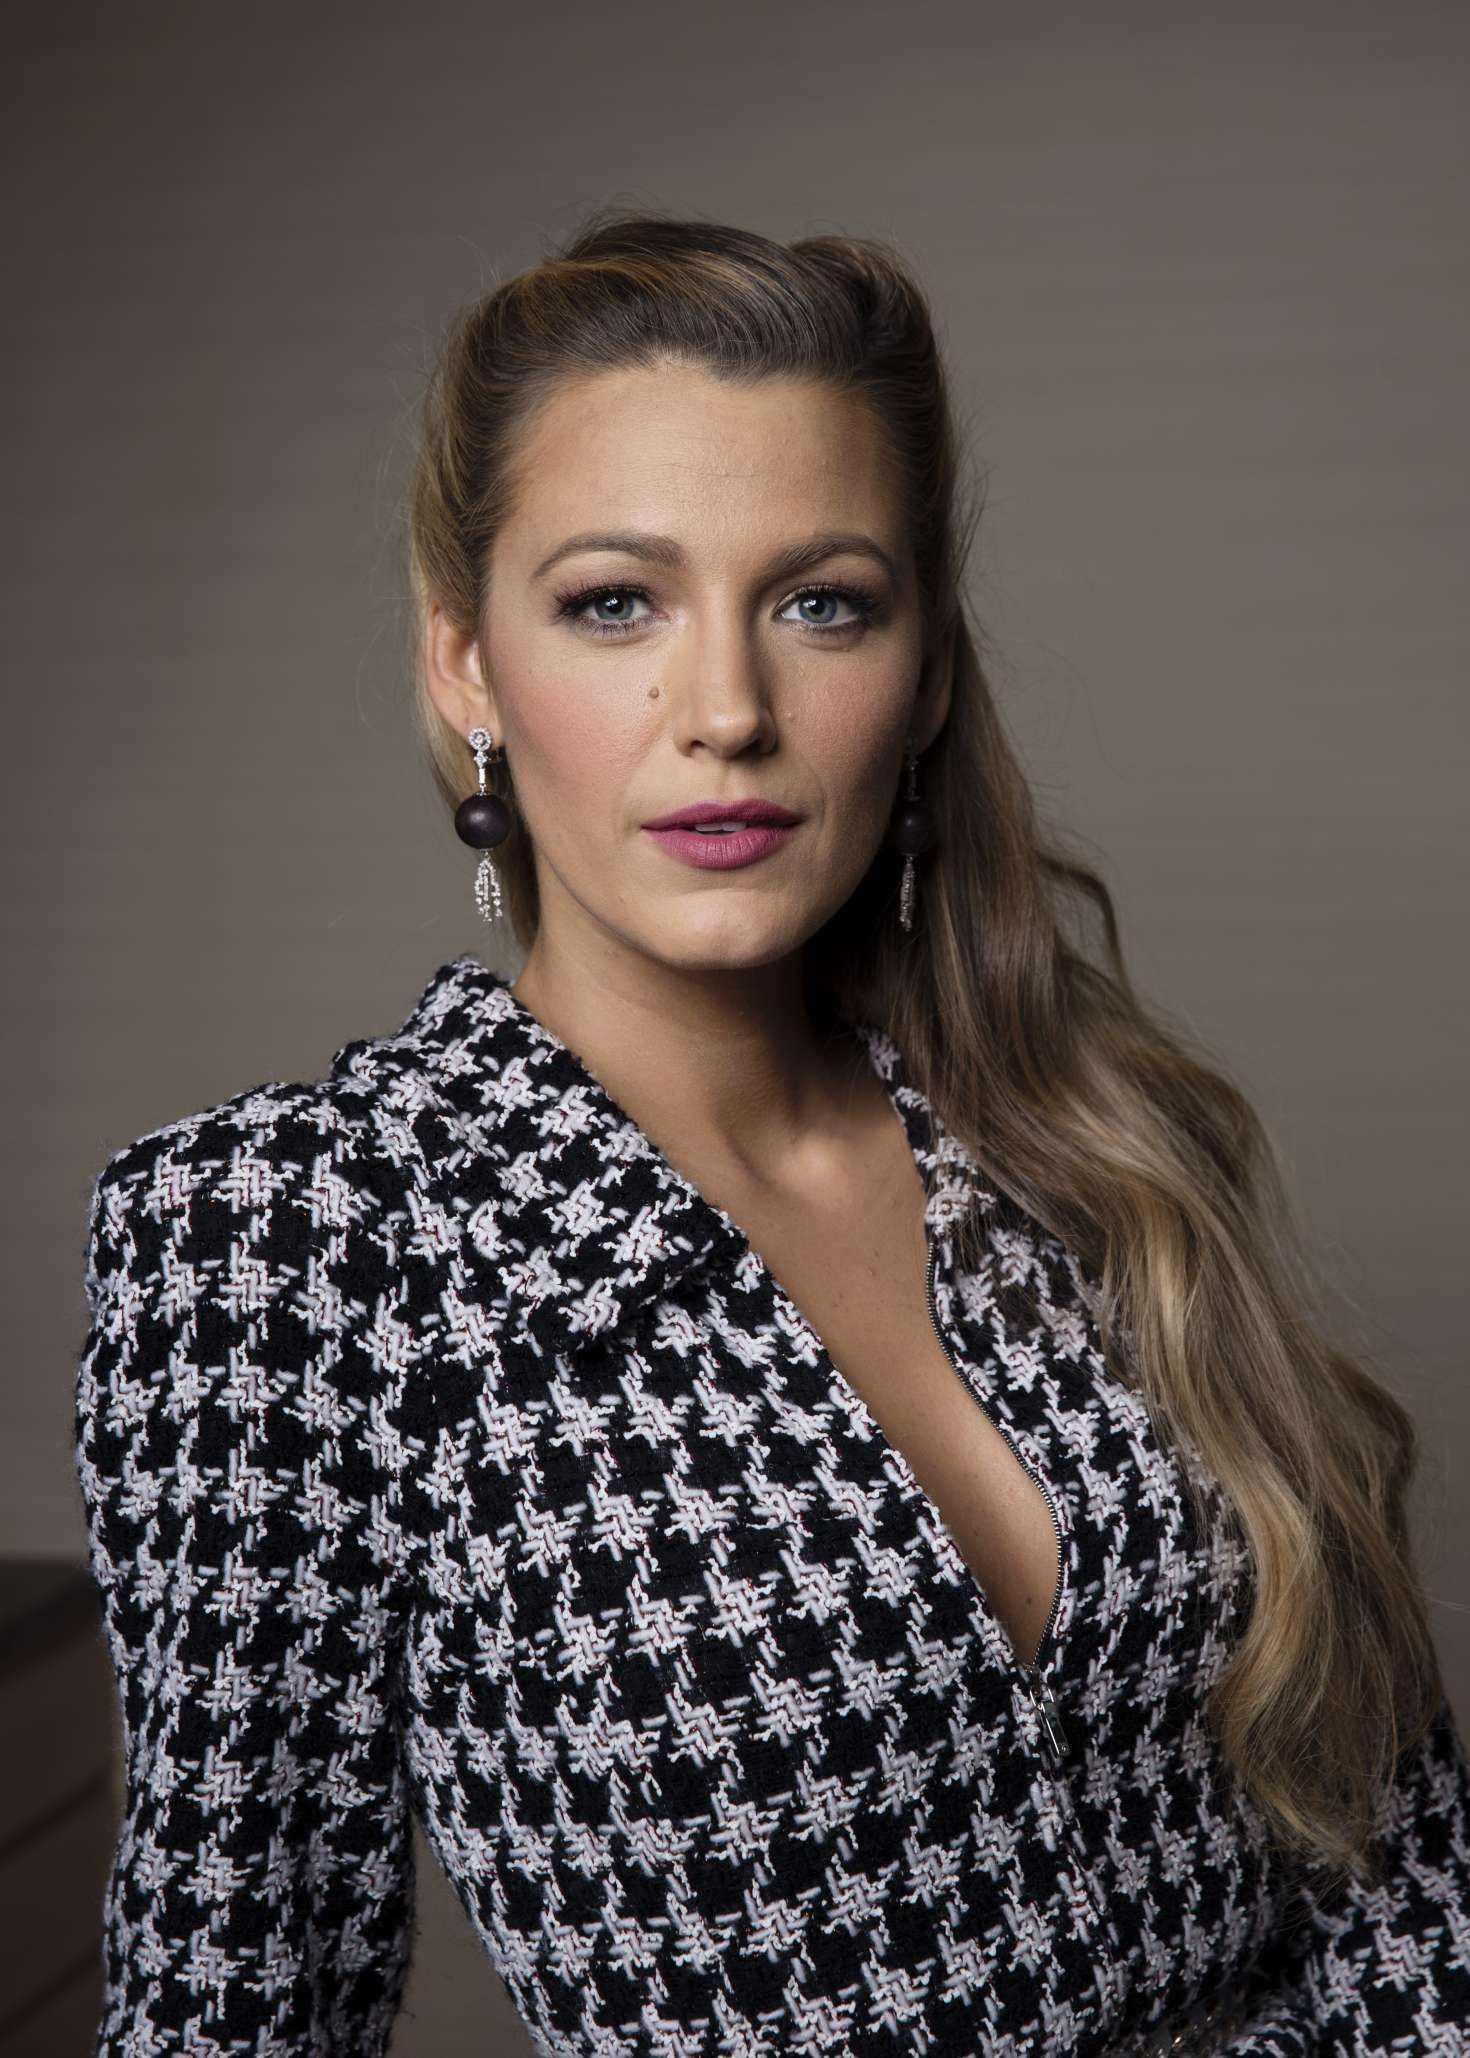 Blake Lively - Taylor Jewell Photoshoot 2017 #blakelively